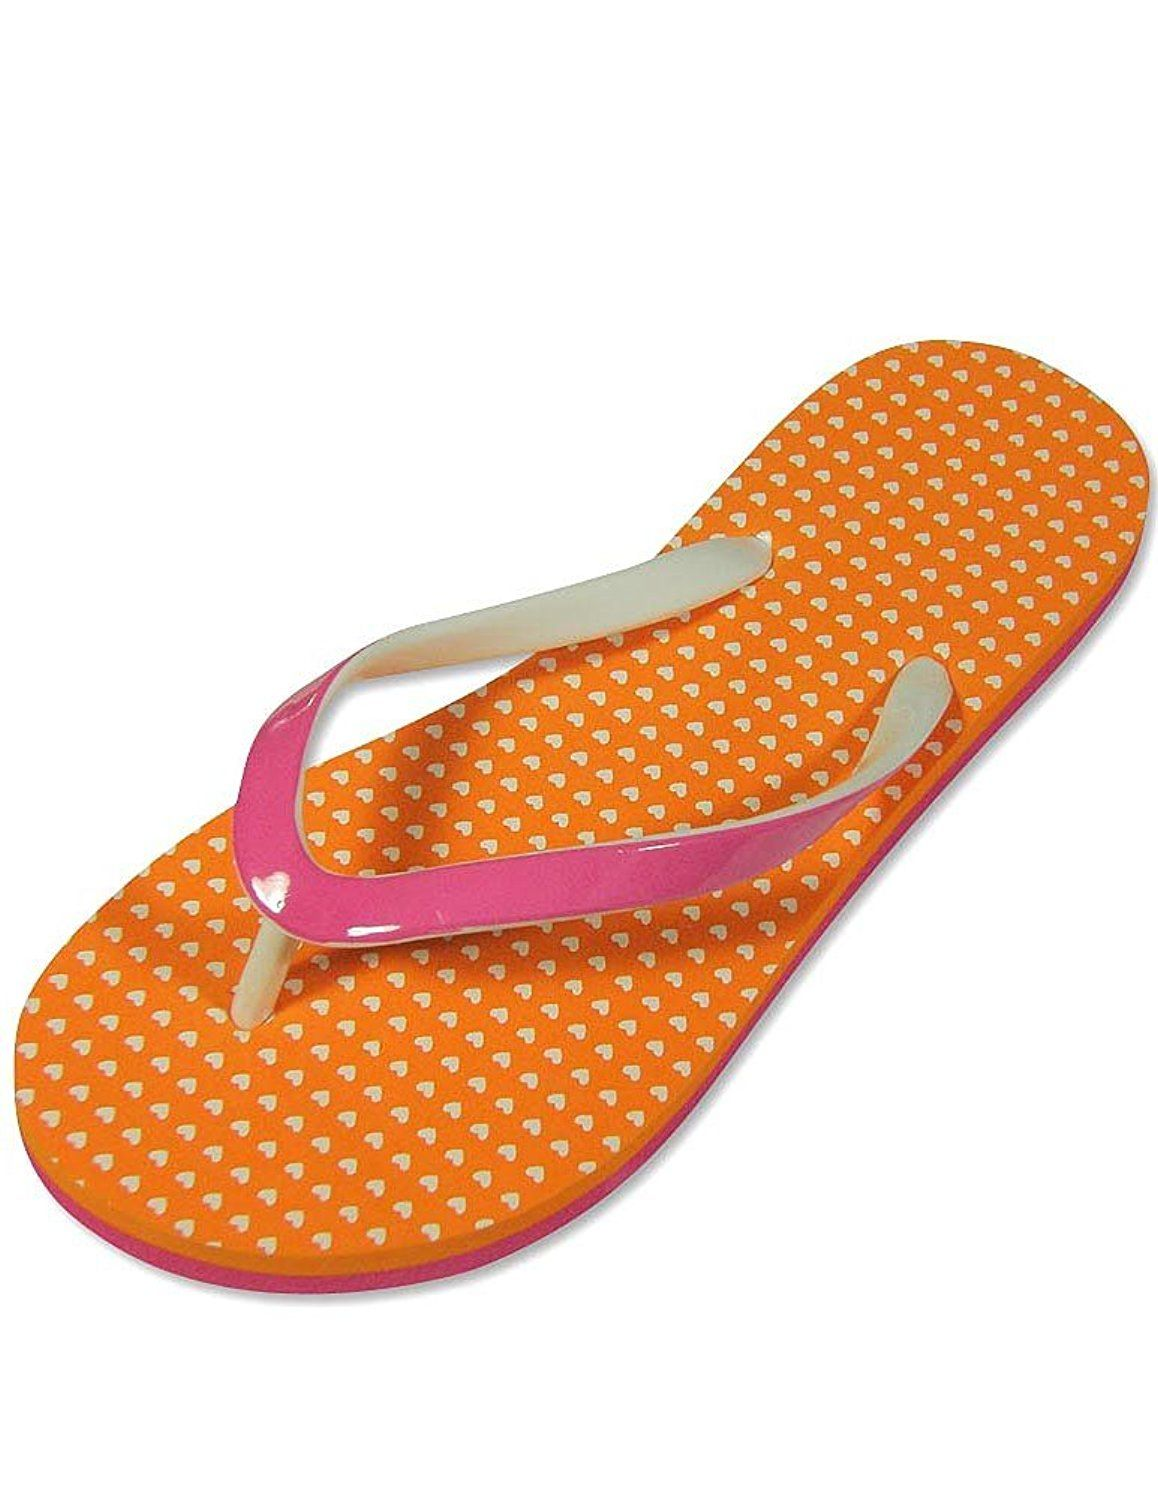 37e1c47975bc Private Label - Ladies Flip Flop   Want to know more